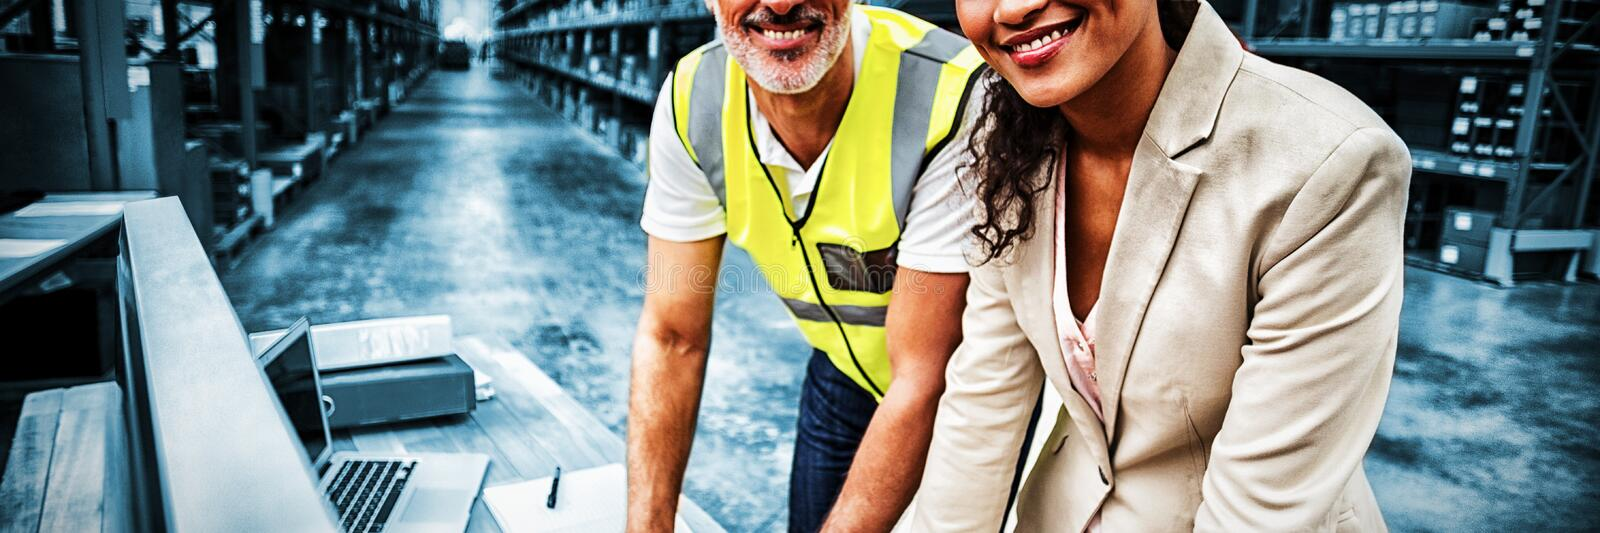 Portrait of warehouse manager and worker working together stock photography